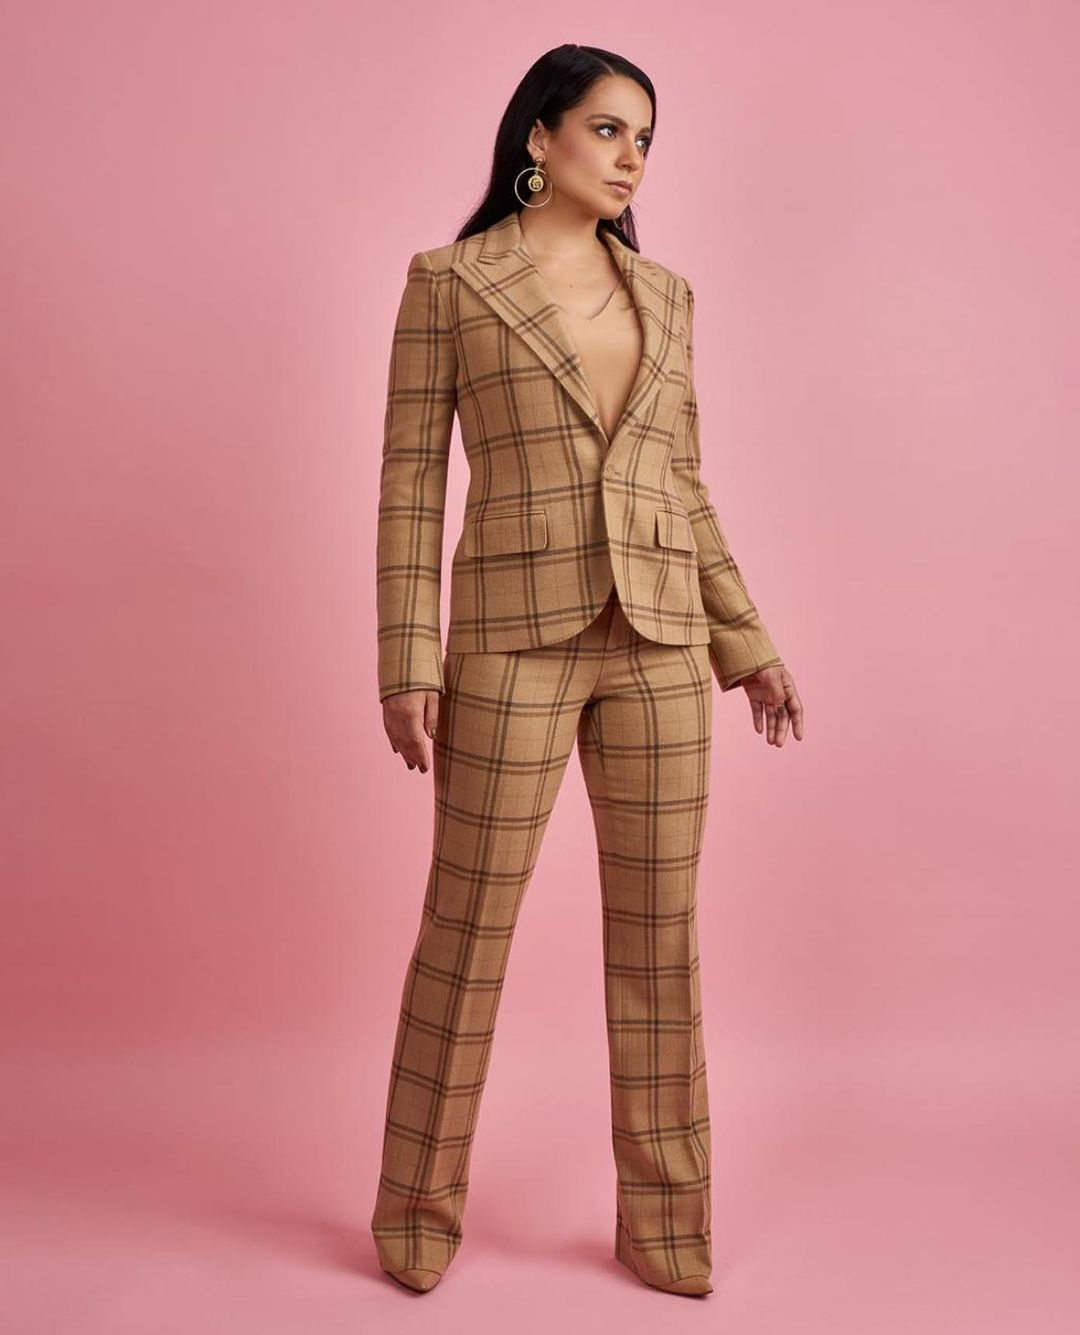 Kangana Ranaut The ultimate suit Chick Outfits for Work